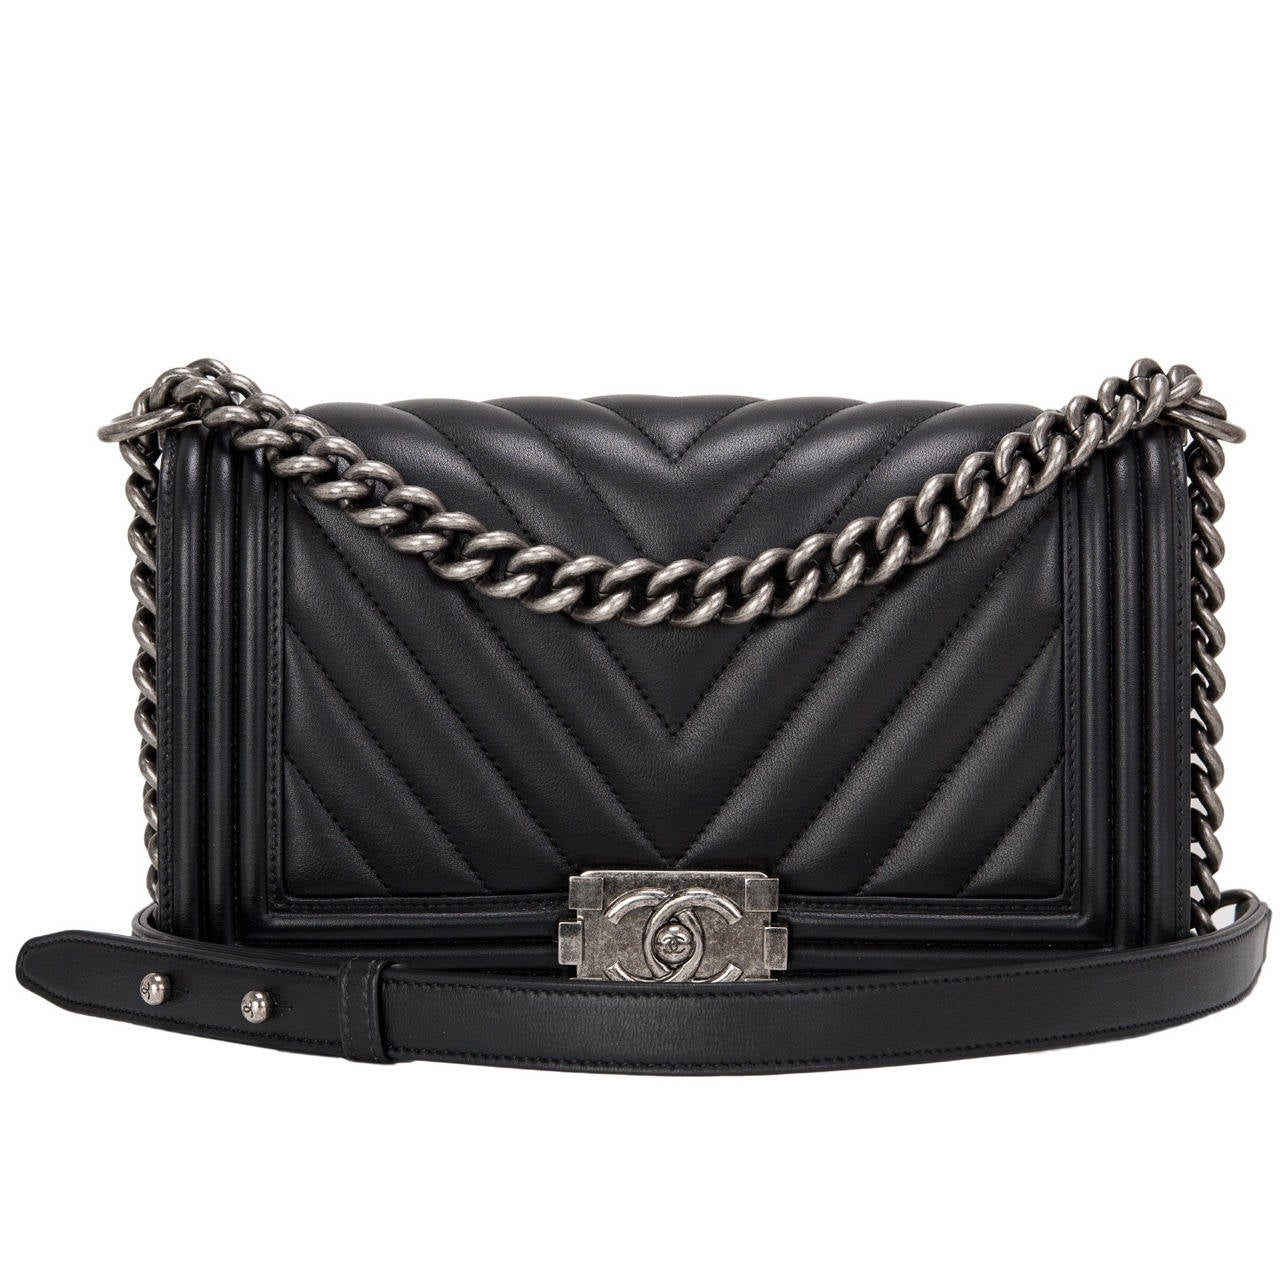 Chanel Black Chevron Medium Boy Bag At 1stdibs